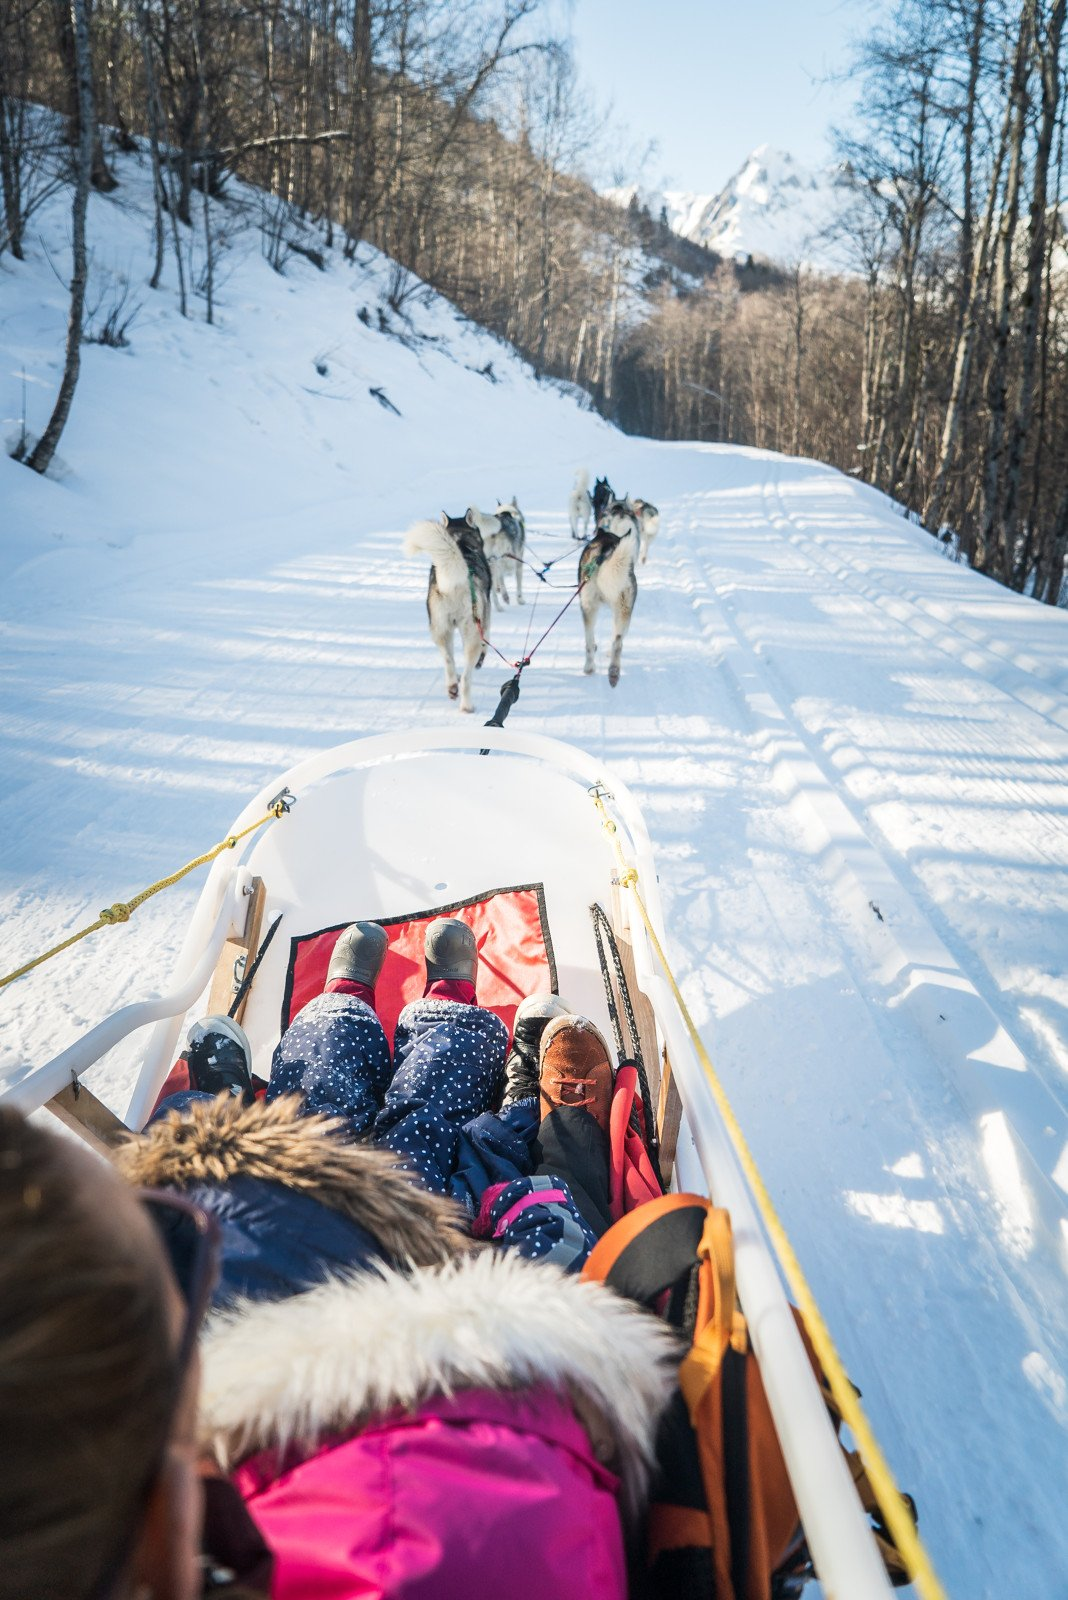 Dog sleigh ride with friendly huskies in St Martin de Belleville - A magical day in the snow.